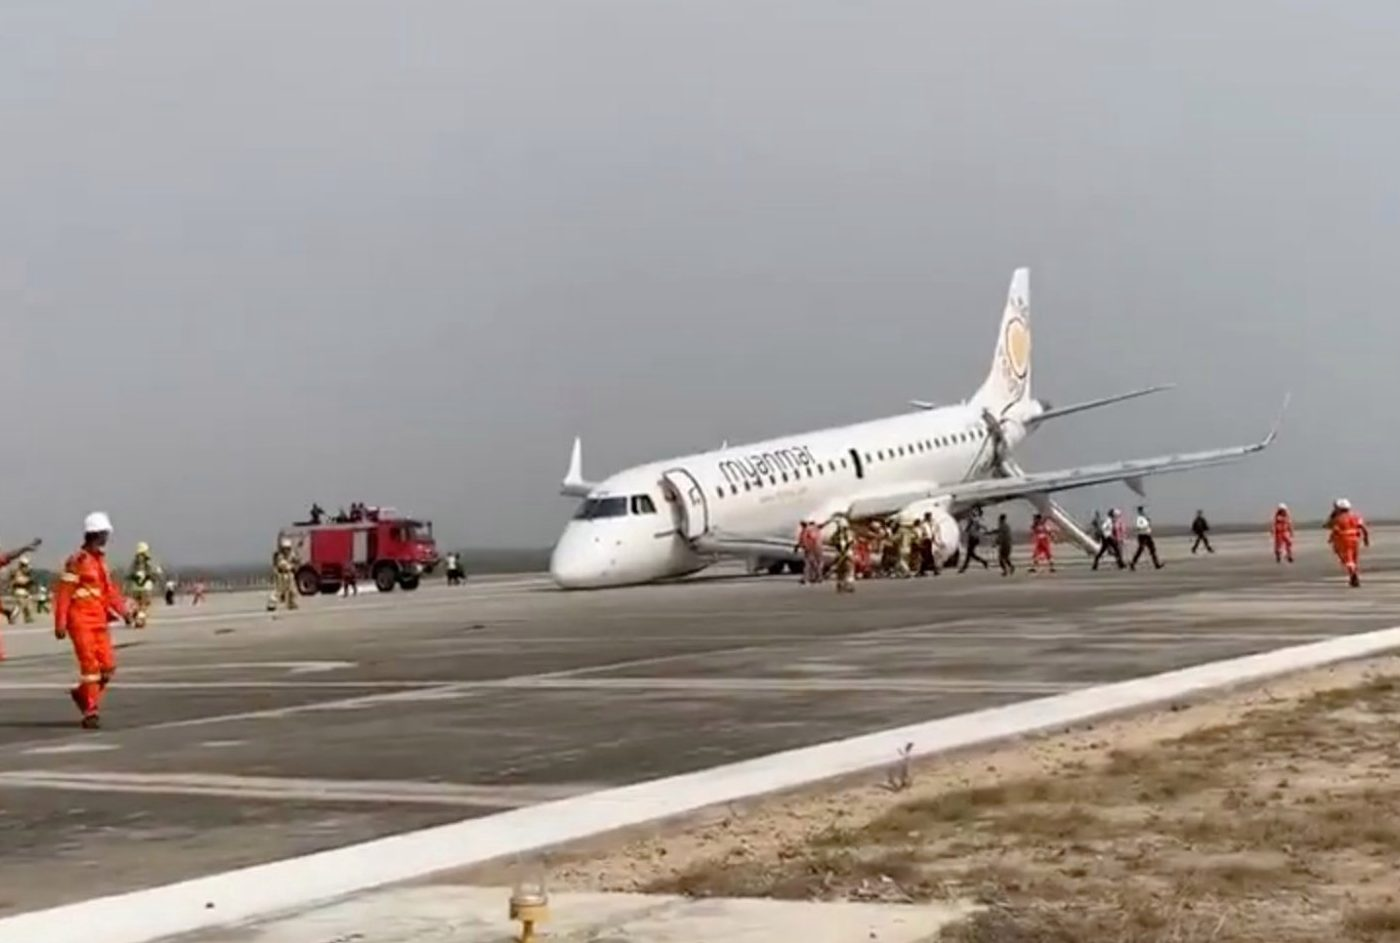 A passenger records the scene on her phone as firefighters attend to the scene after Myanmar National Airlines flight UB103 landed without a front wheel at Mandalay International Airport in Tada-U, Myanmar May 12, 2019 in this still image taken from social media video. Nay Min via REUTERS ATTENTION EDITORS - THIS IMAGE WAS PROVIDED BY A THIRD PARTY. NO RESALES. NO ARCHIVES. MANDATORY CREDIT